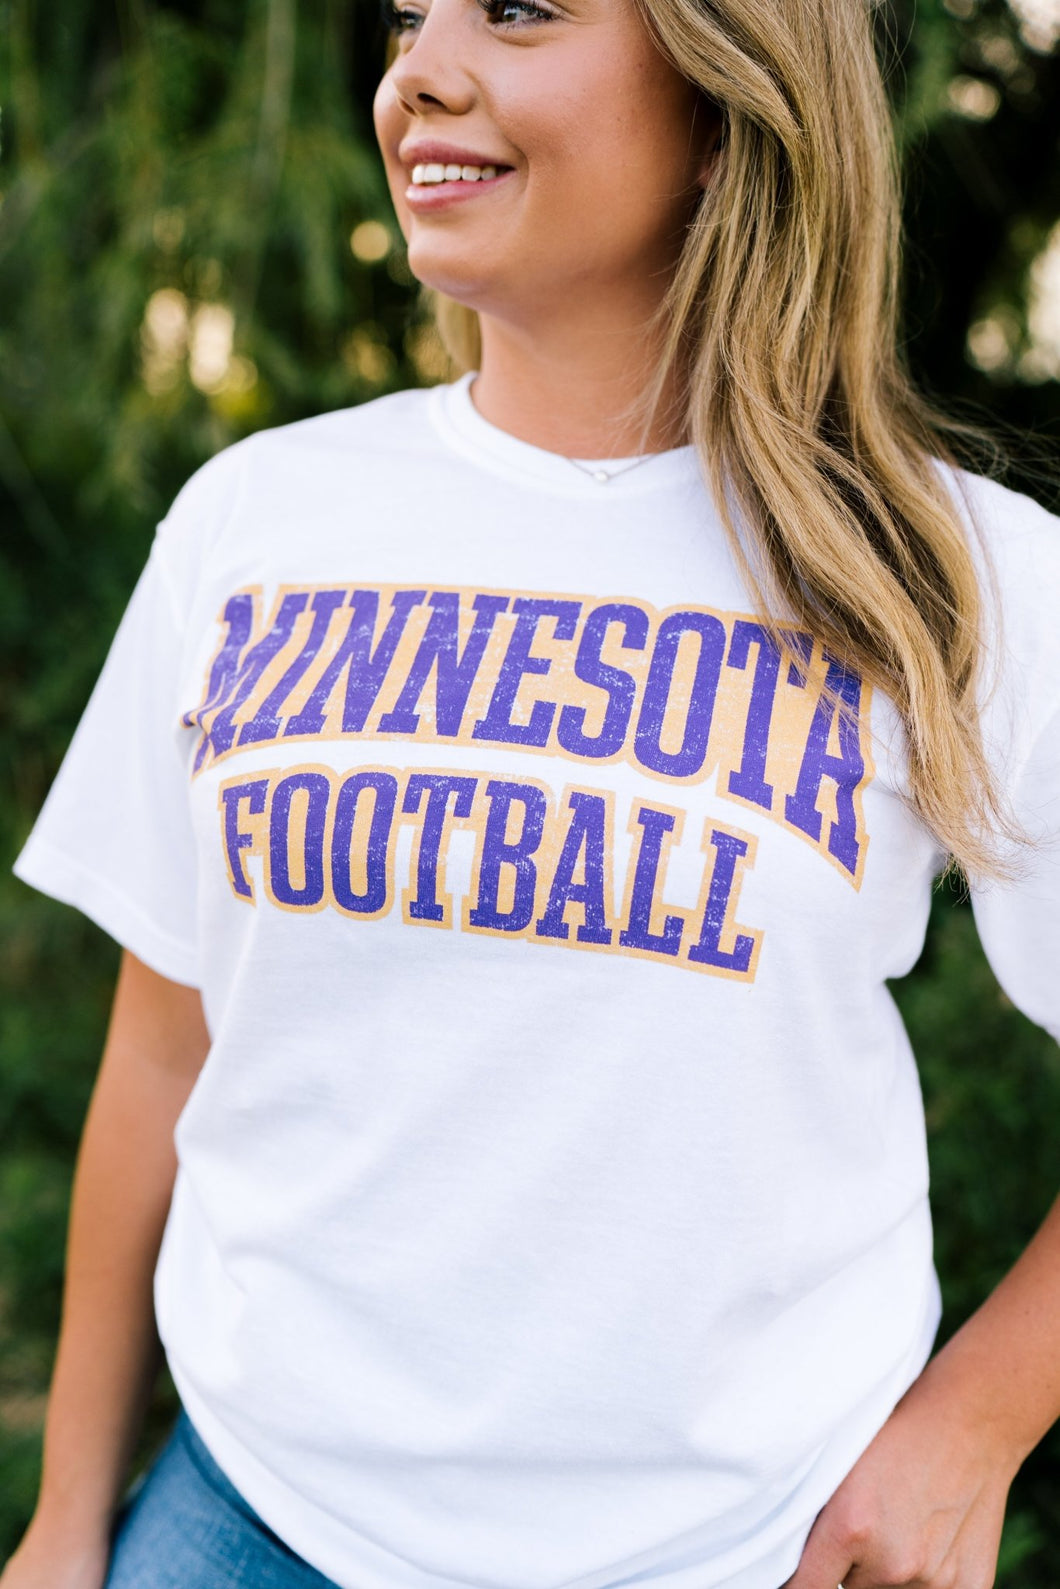 Minnesota Football Oversized Vintage Tee - Fan Girl MN